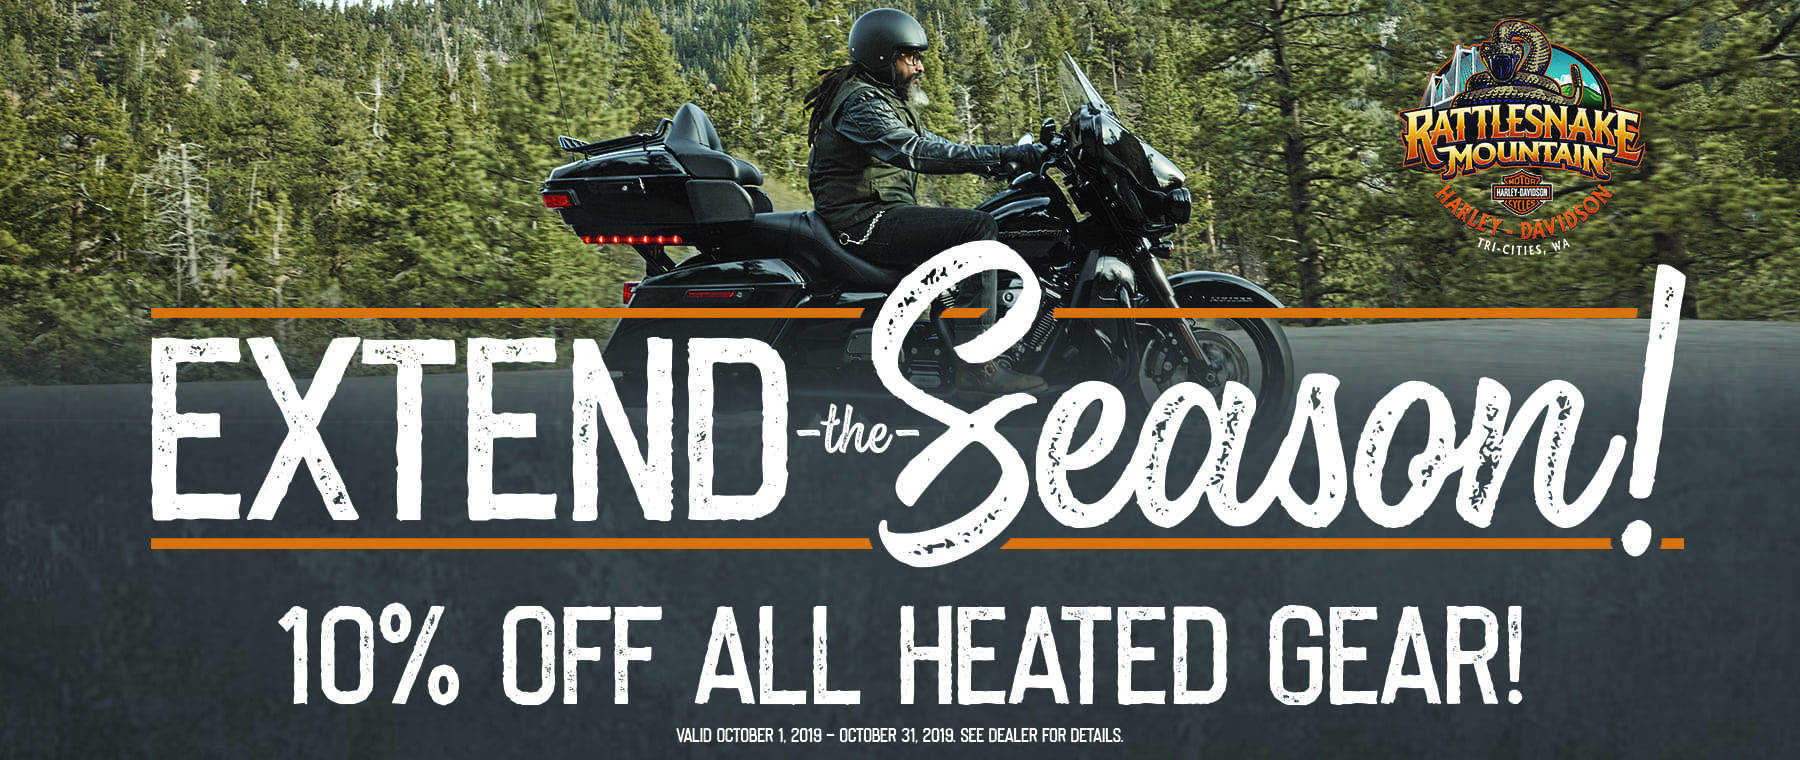 Ride into cooler weather with heated accessories and clothing!